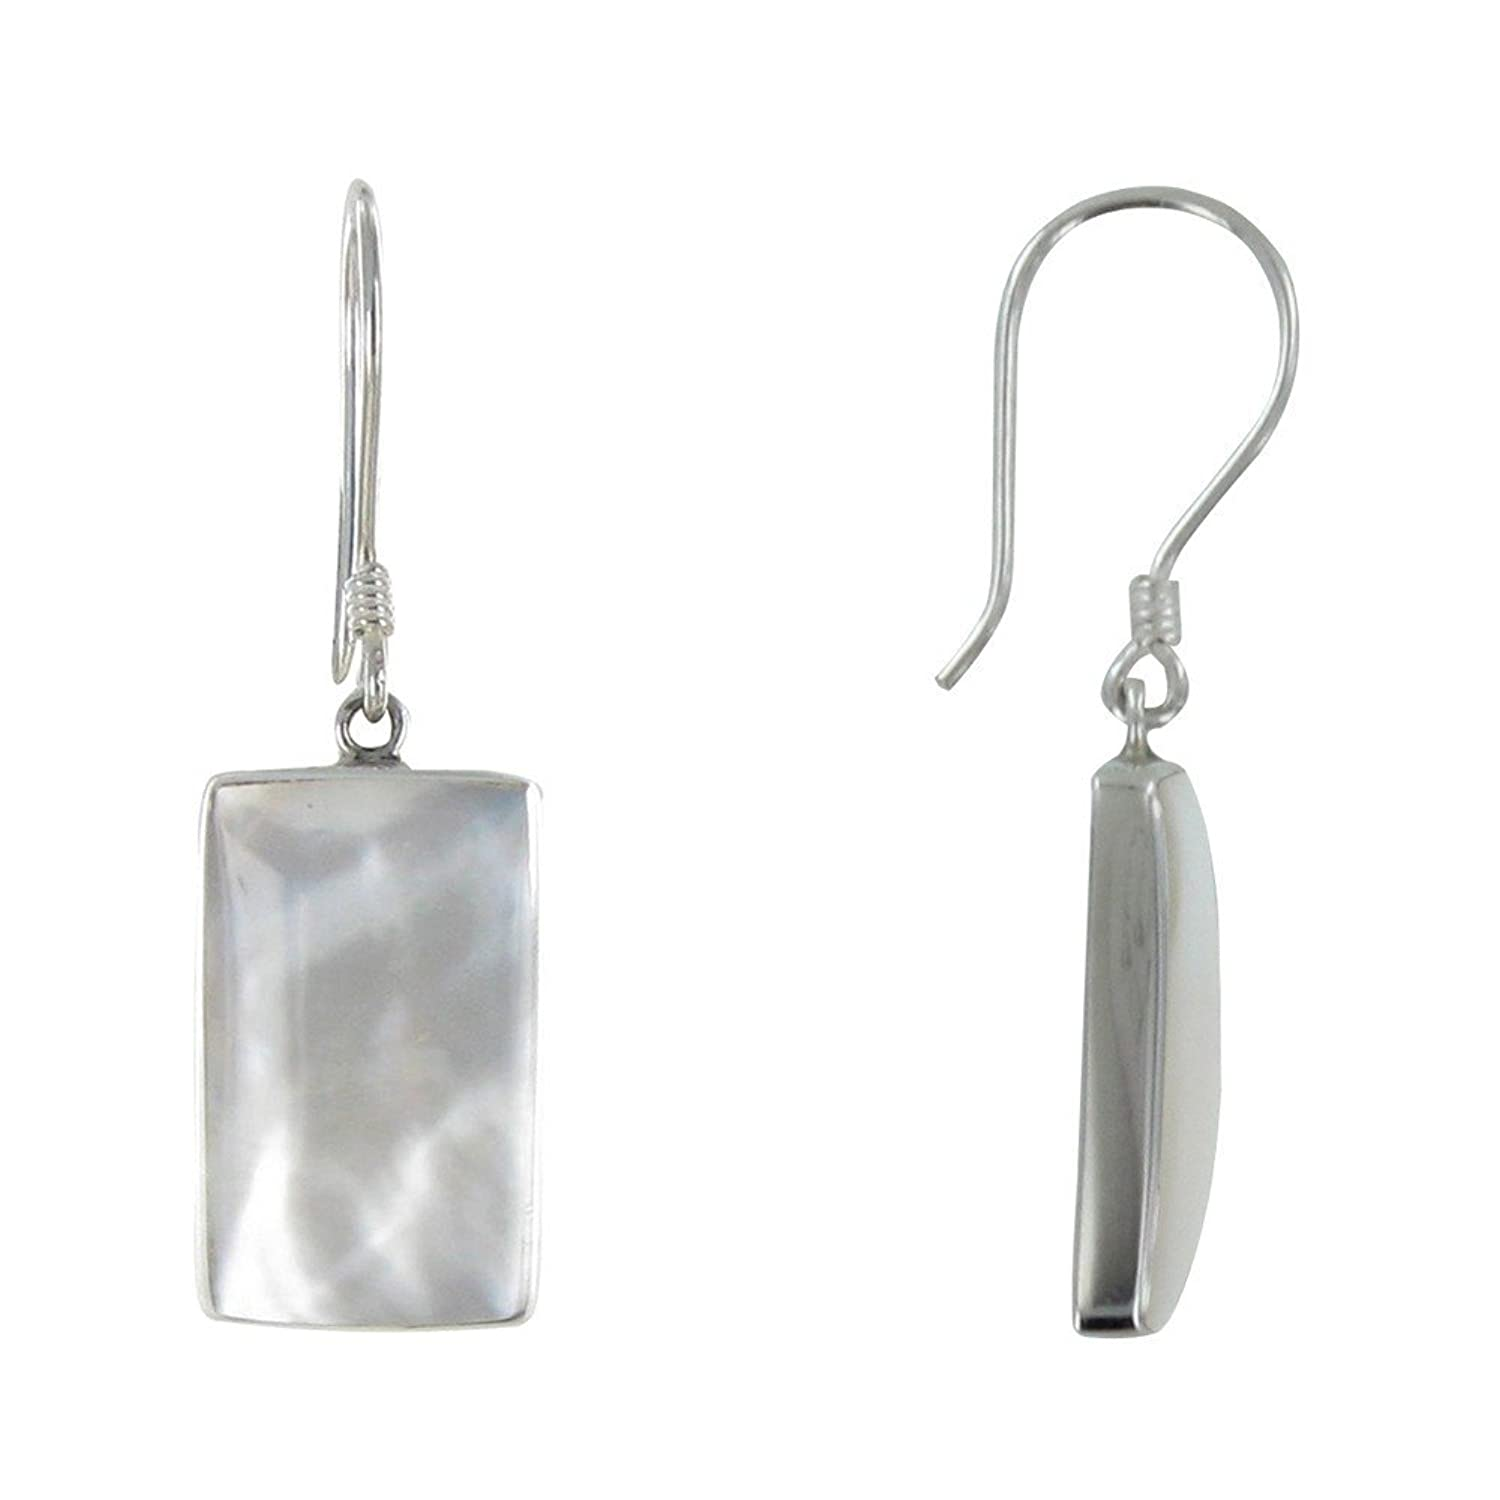 48a4380353910 Les Poulettes Jewels - Sterling Silver Earrings Mother of Pearl ...